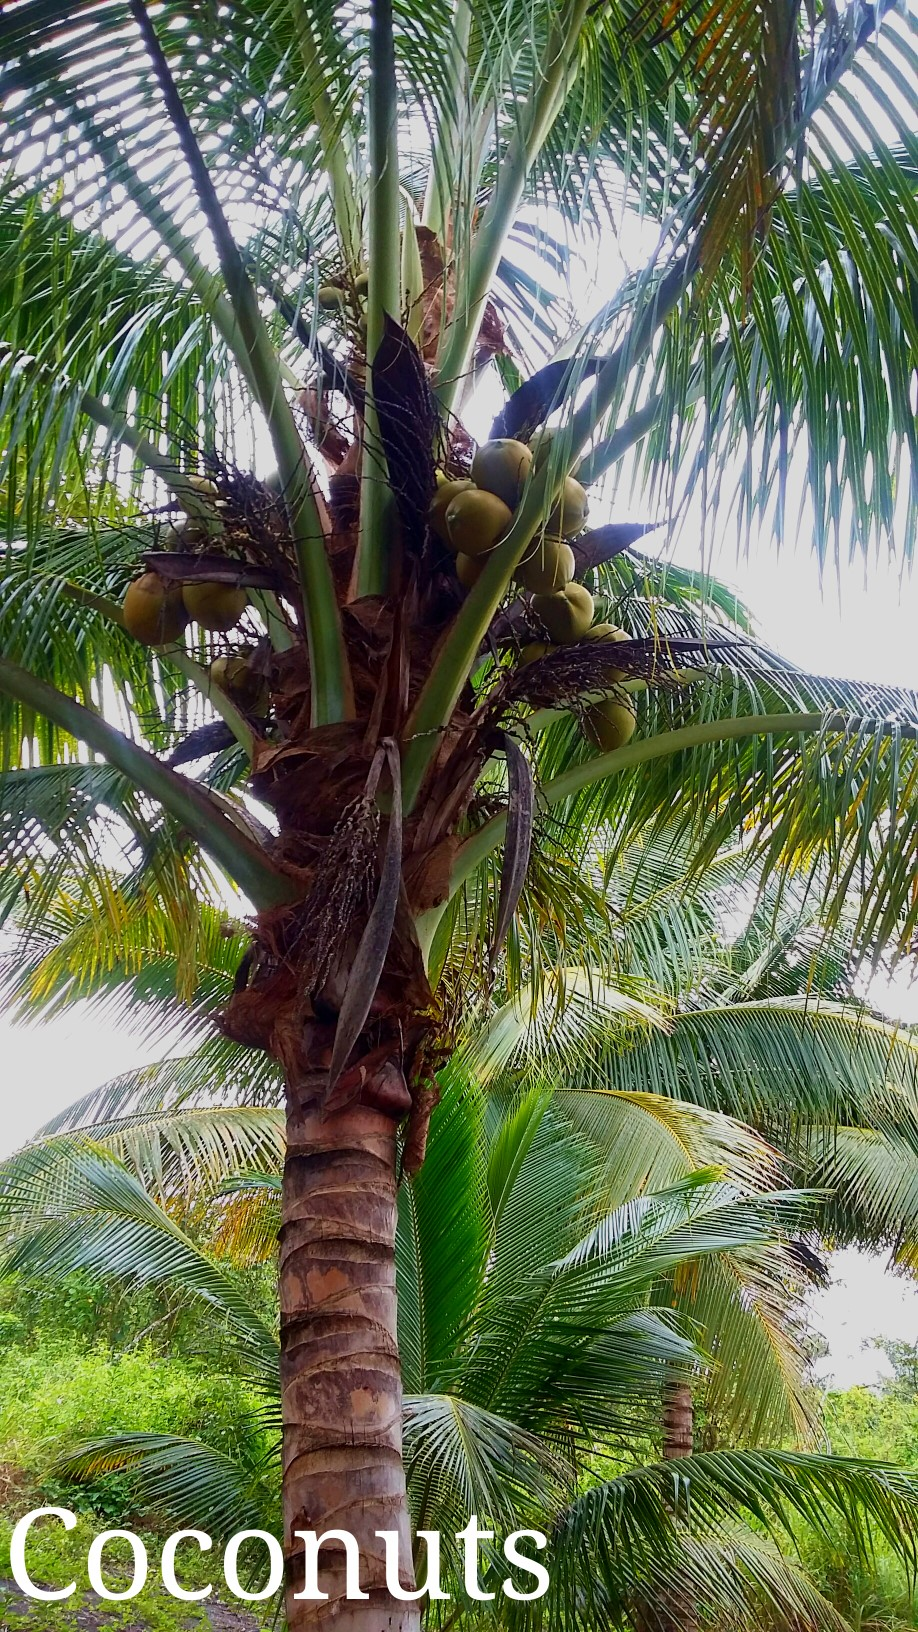 Coconut Tree with the drupes